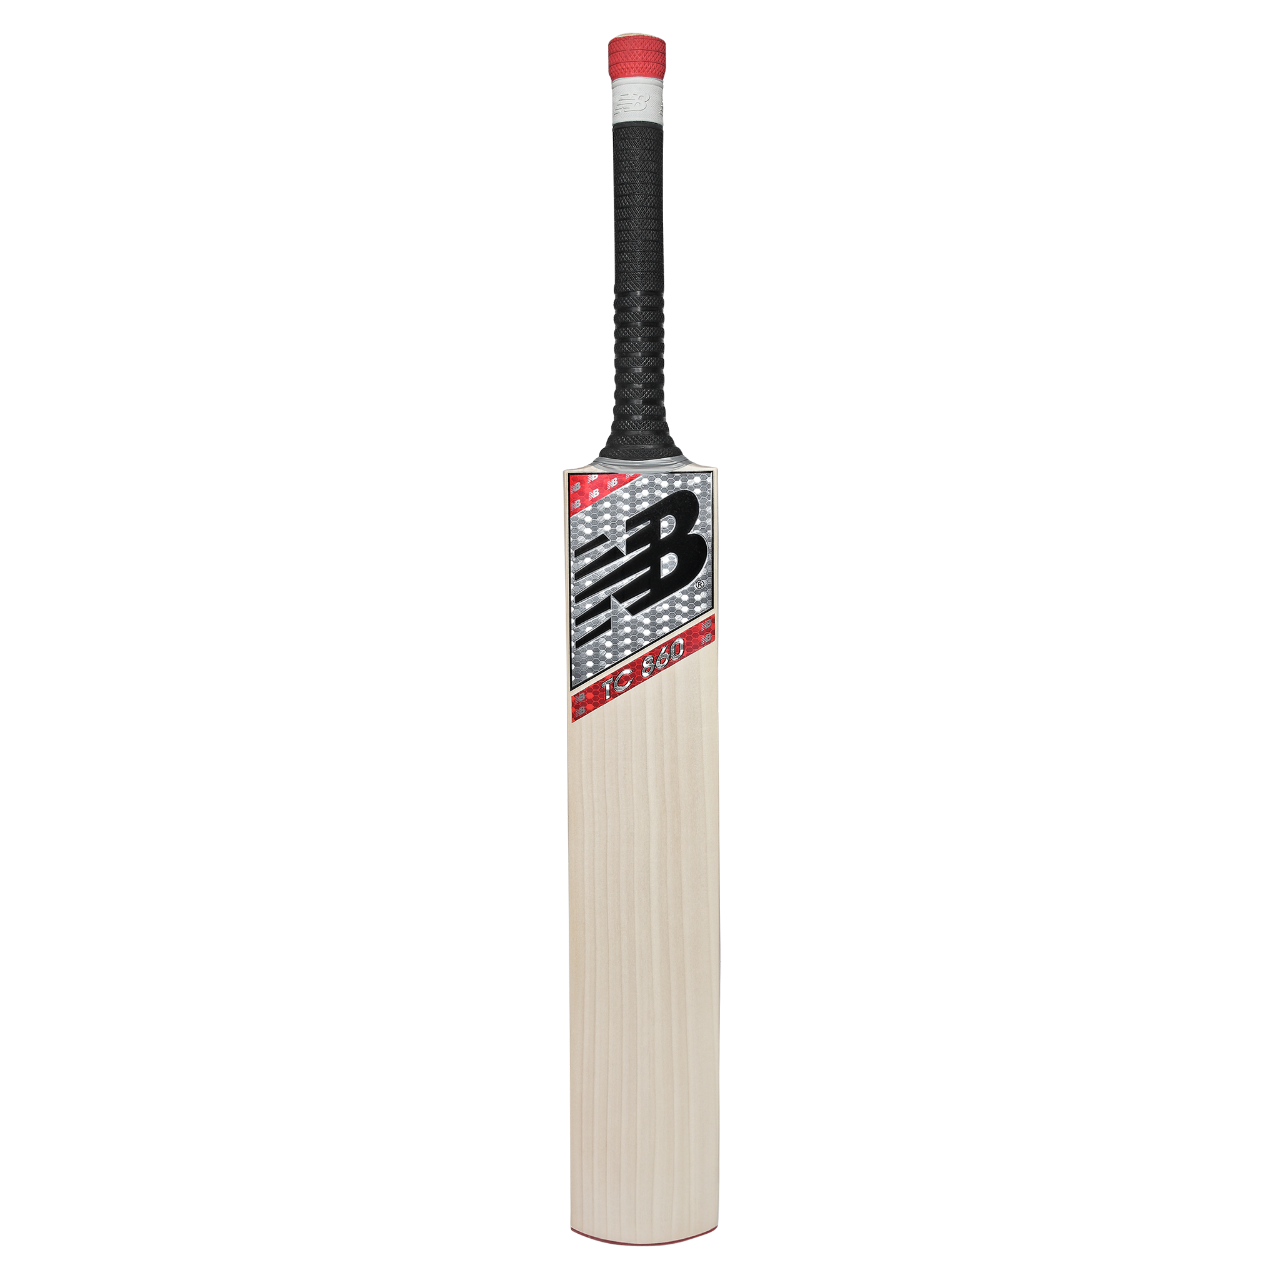 2020 New Balance TC 560 Junior Cricket Bat